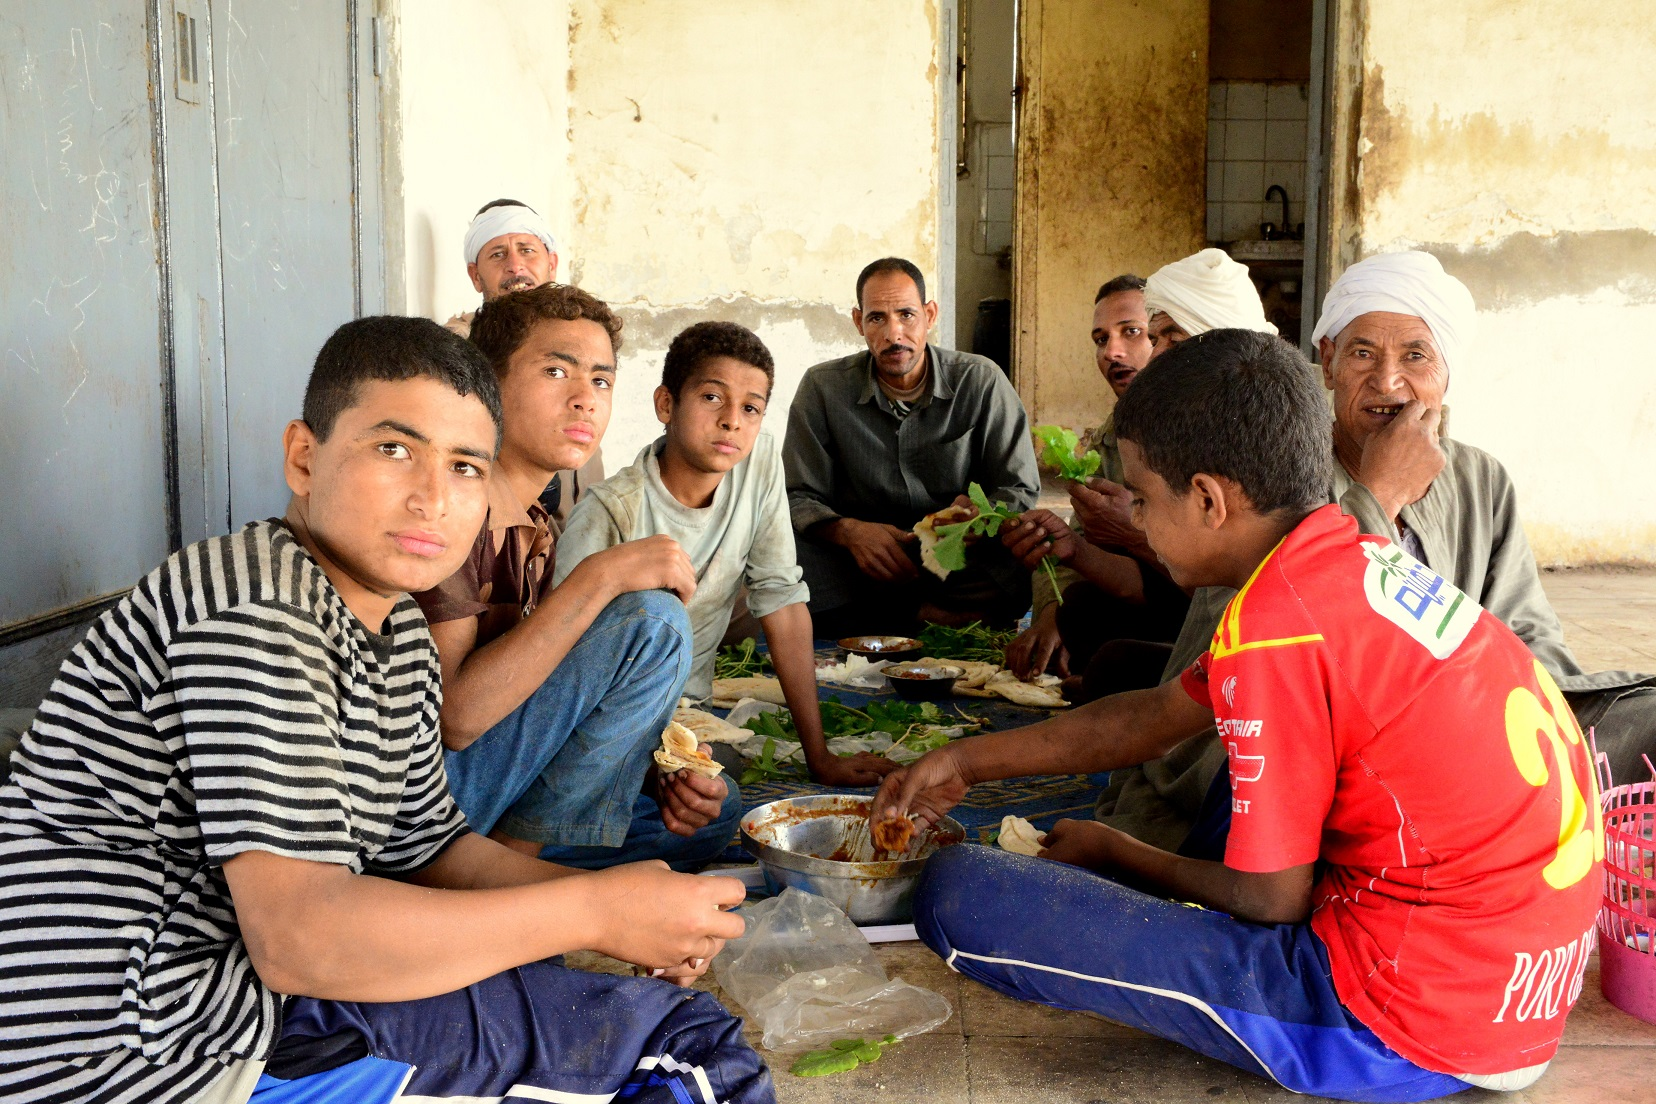 The families subsist on simple Egyptian foods like fuul and arugula, which they are happy to share with passersby (Photo by Aaron T. Rose)